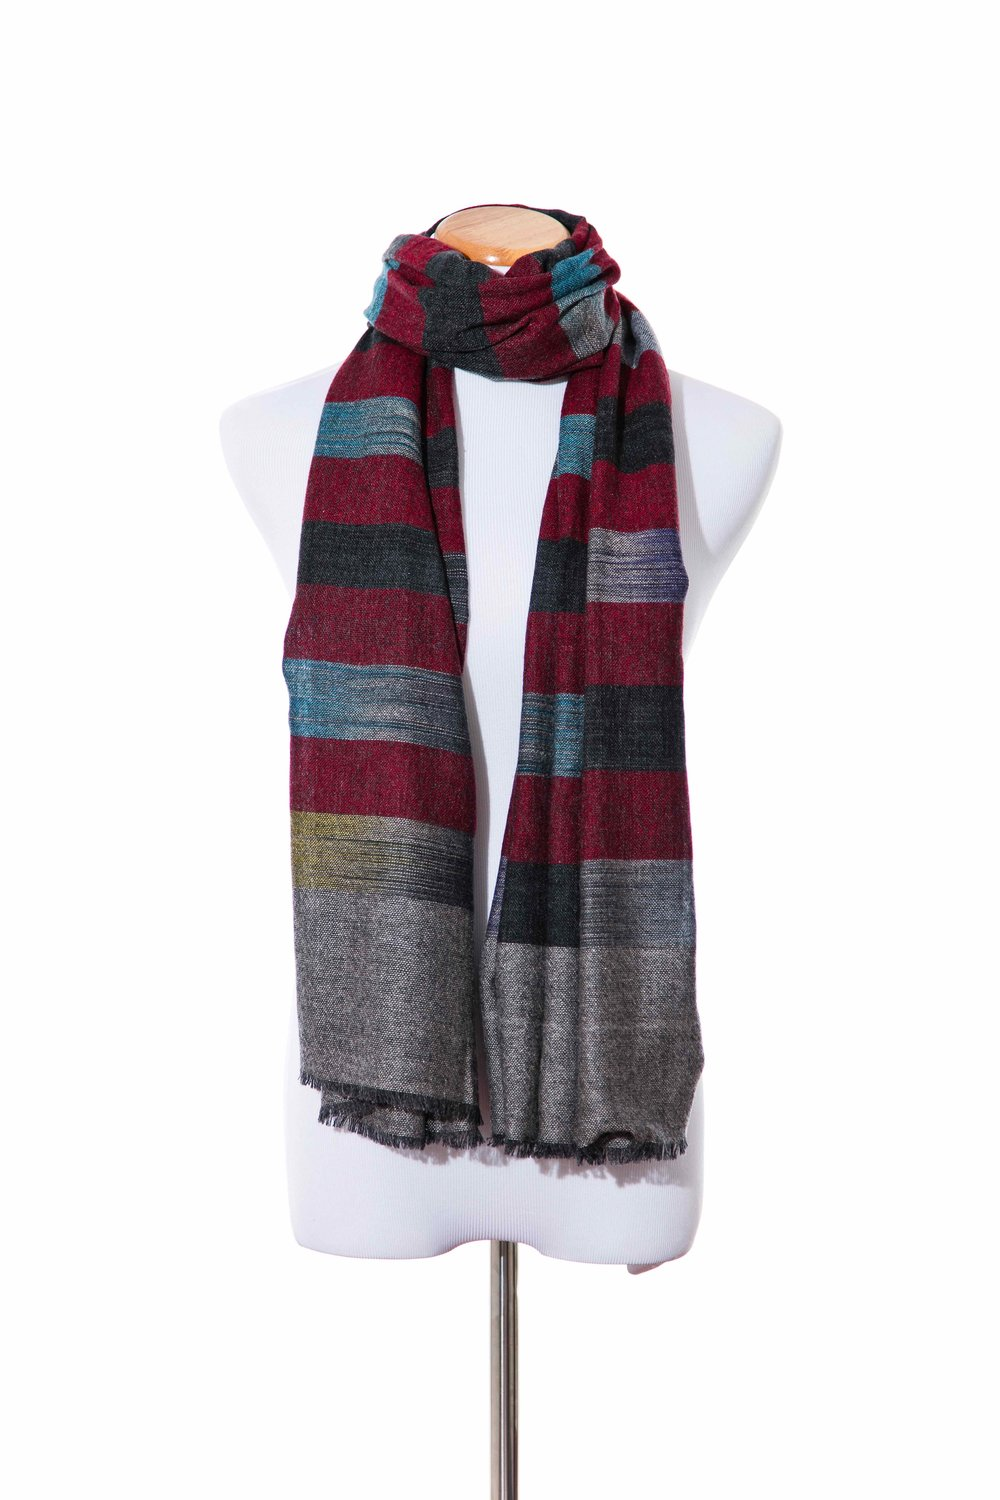 STYLE NO: 11216  COLOR: MAROON GREY  QUALITY: 60% WOOL 40% NYLON  SIZE: 67 X 190 CM